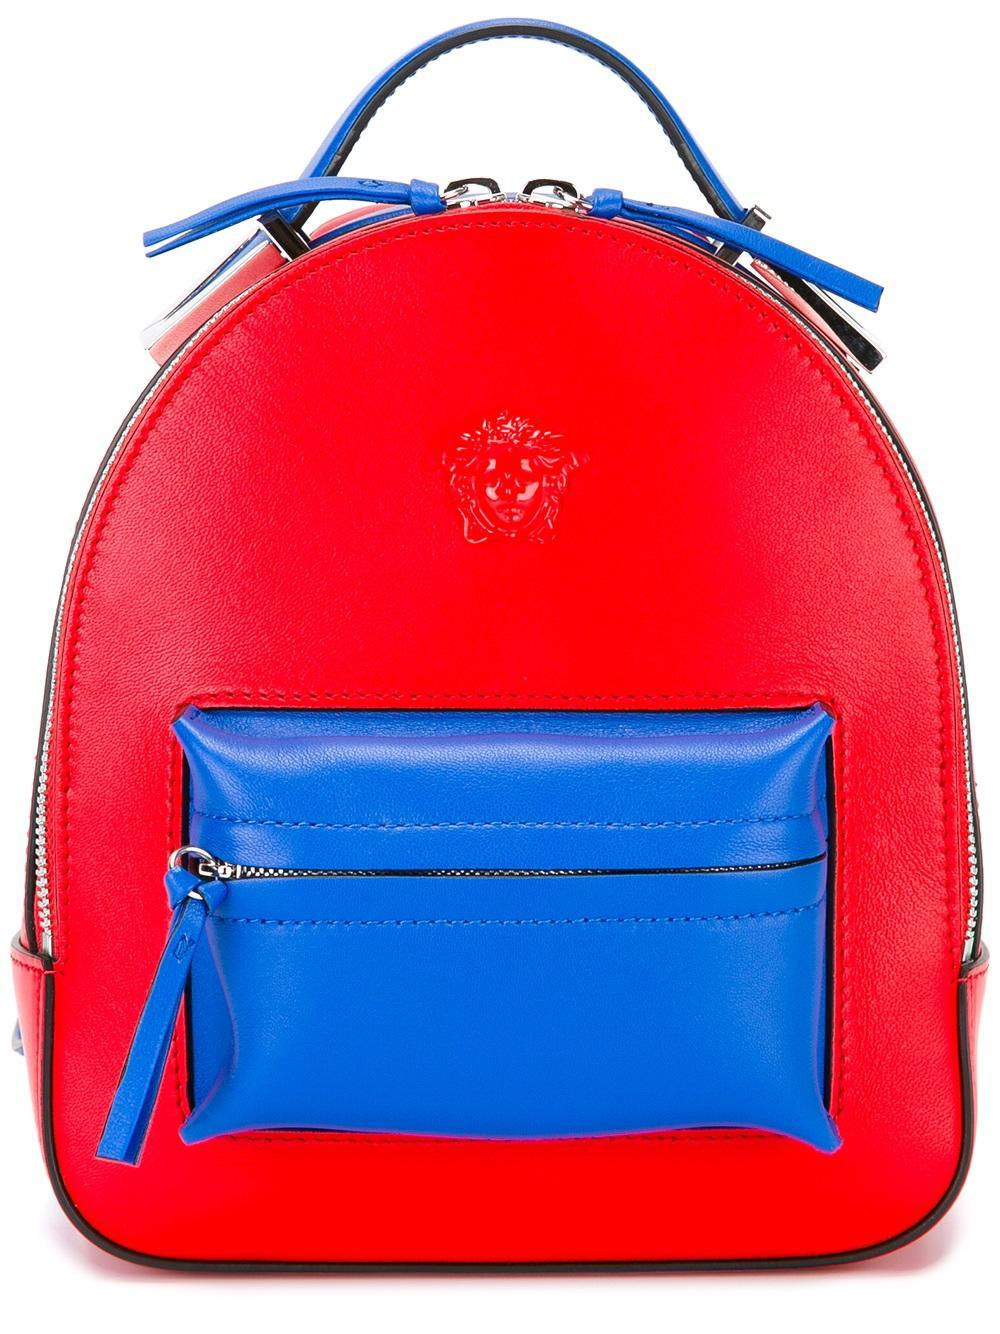 f7d02e24692 Versace Mini Medusa Palazzo Leather Backpack in Red - Lyst